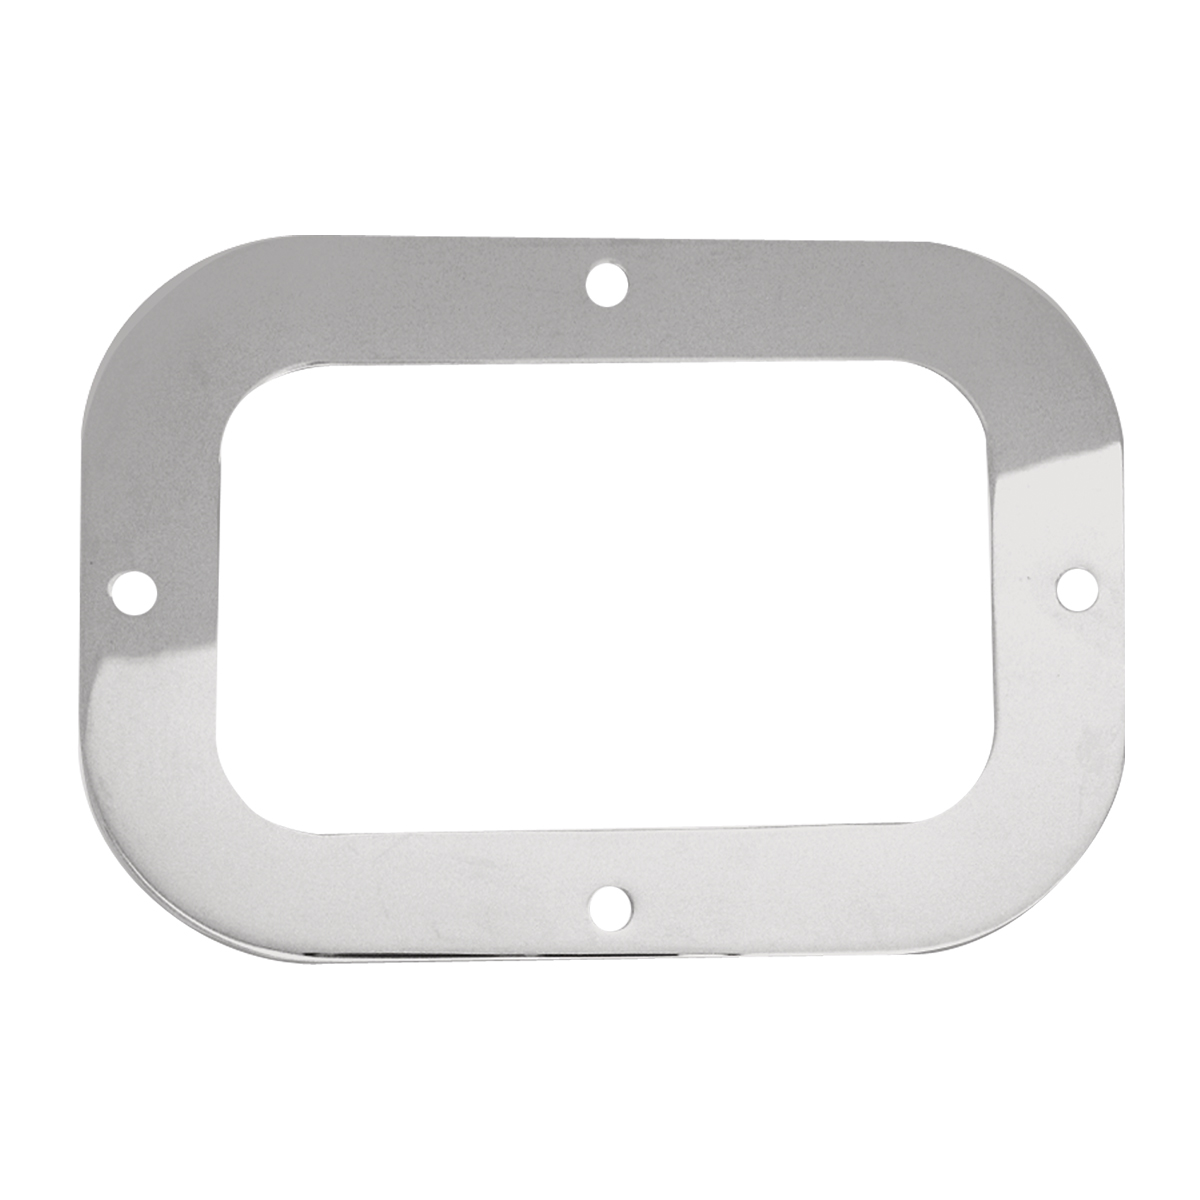 80788 Stainless Steel Security Ring for Large Rectangular Light